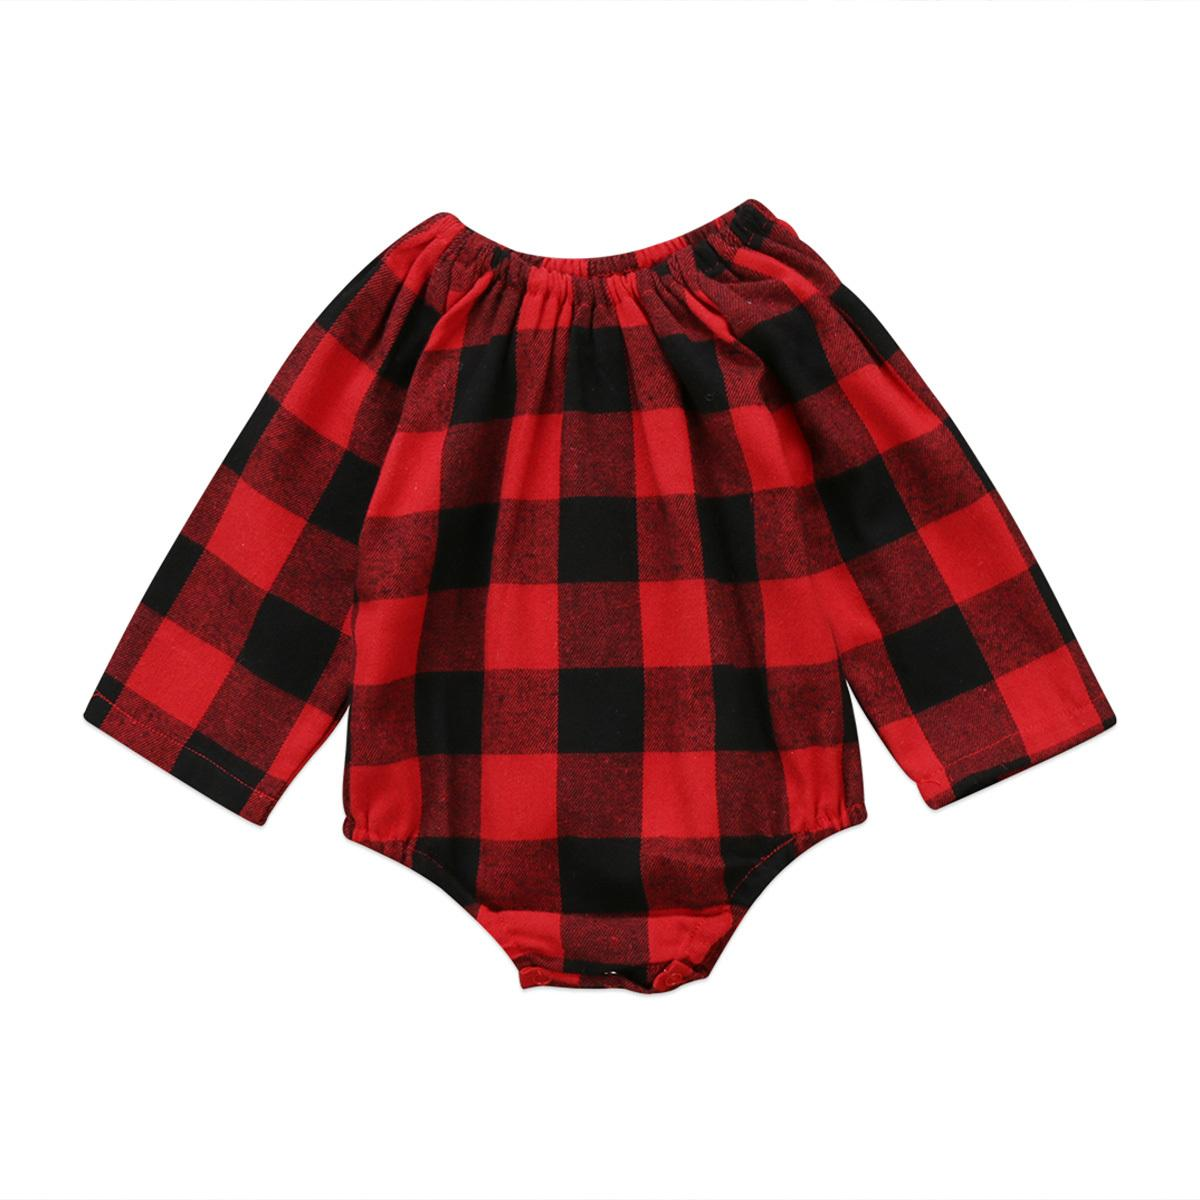 6651e4a40 2019 Christmas Autumn Toddler Infant Baby Boys Girls Long Sleeve Romper Red  Plaid Jumpsuit Clothes Outfits 0 2T Buffalo Plaid Y18102907 From Gou07, ...